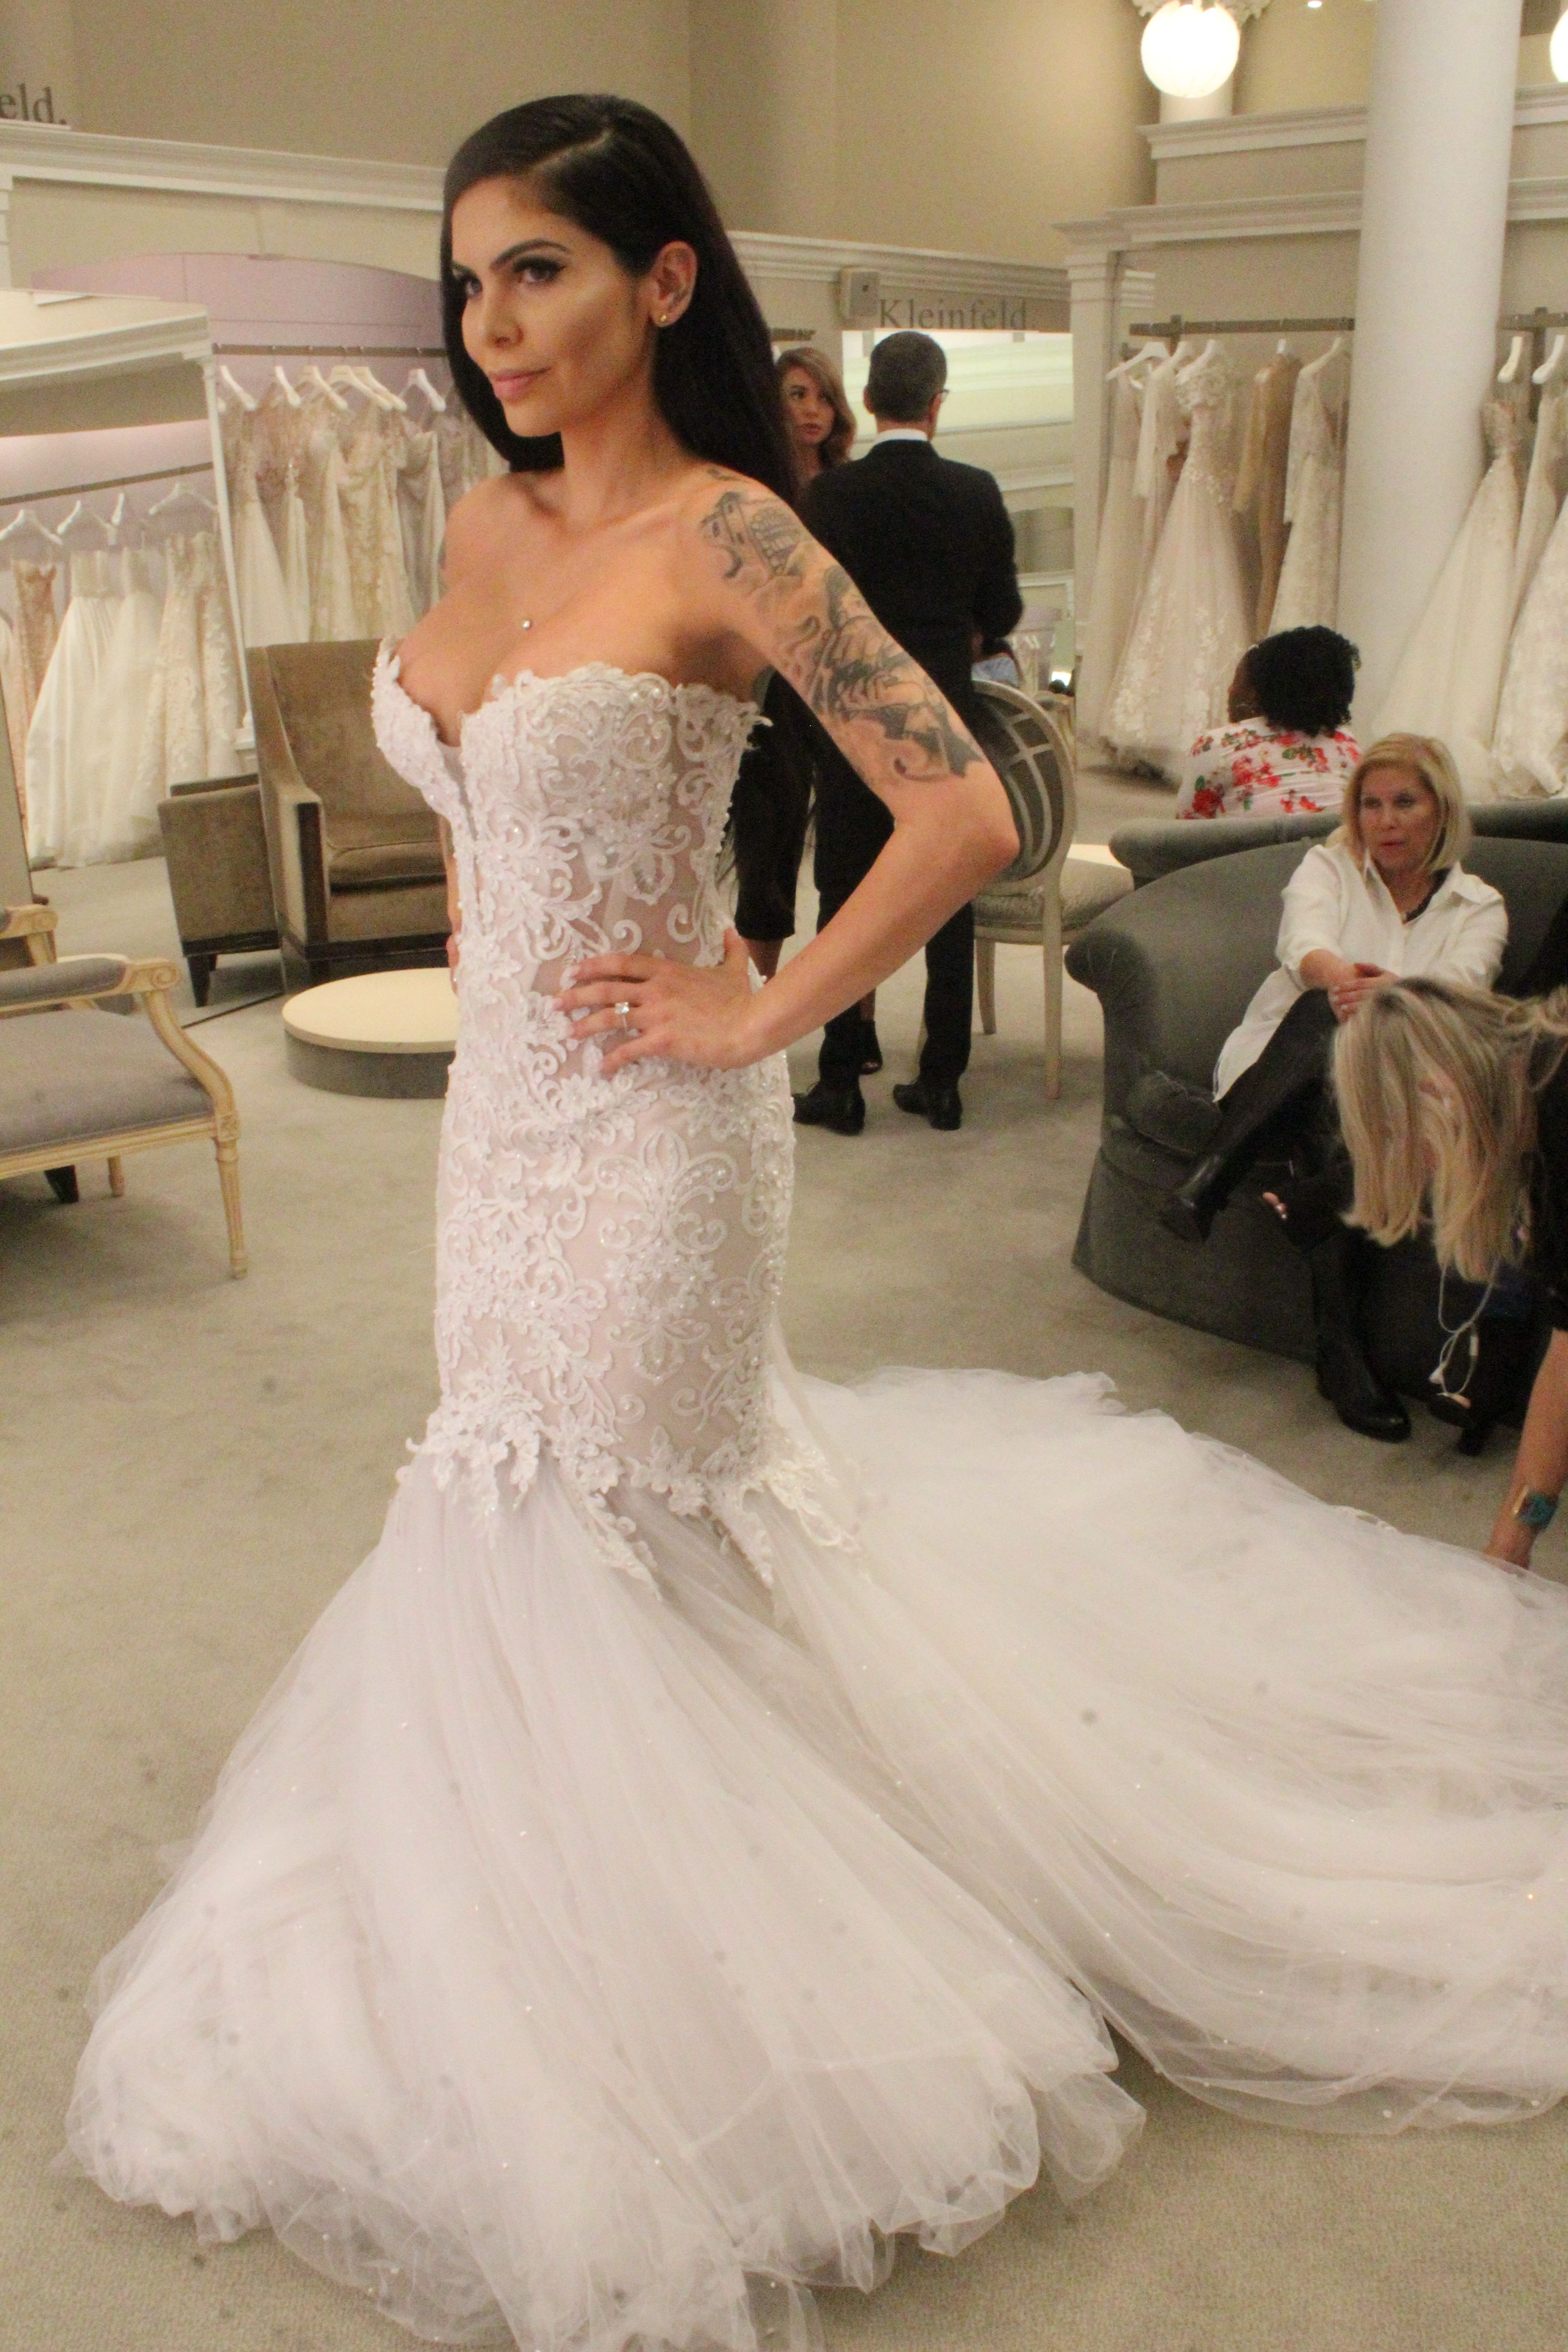 Official Site In 2020 Wedding Dresses Stunning Wedding Dresses